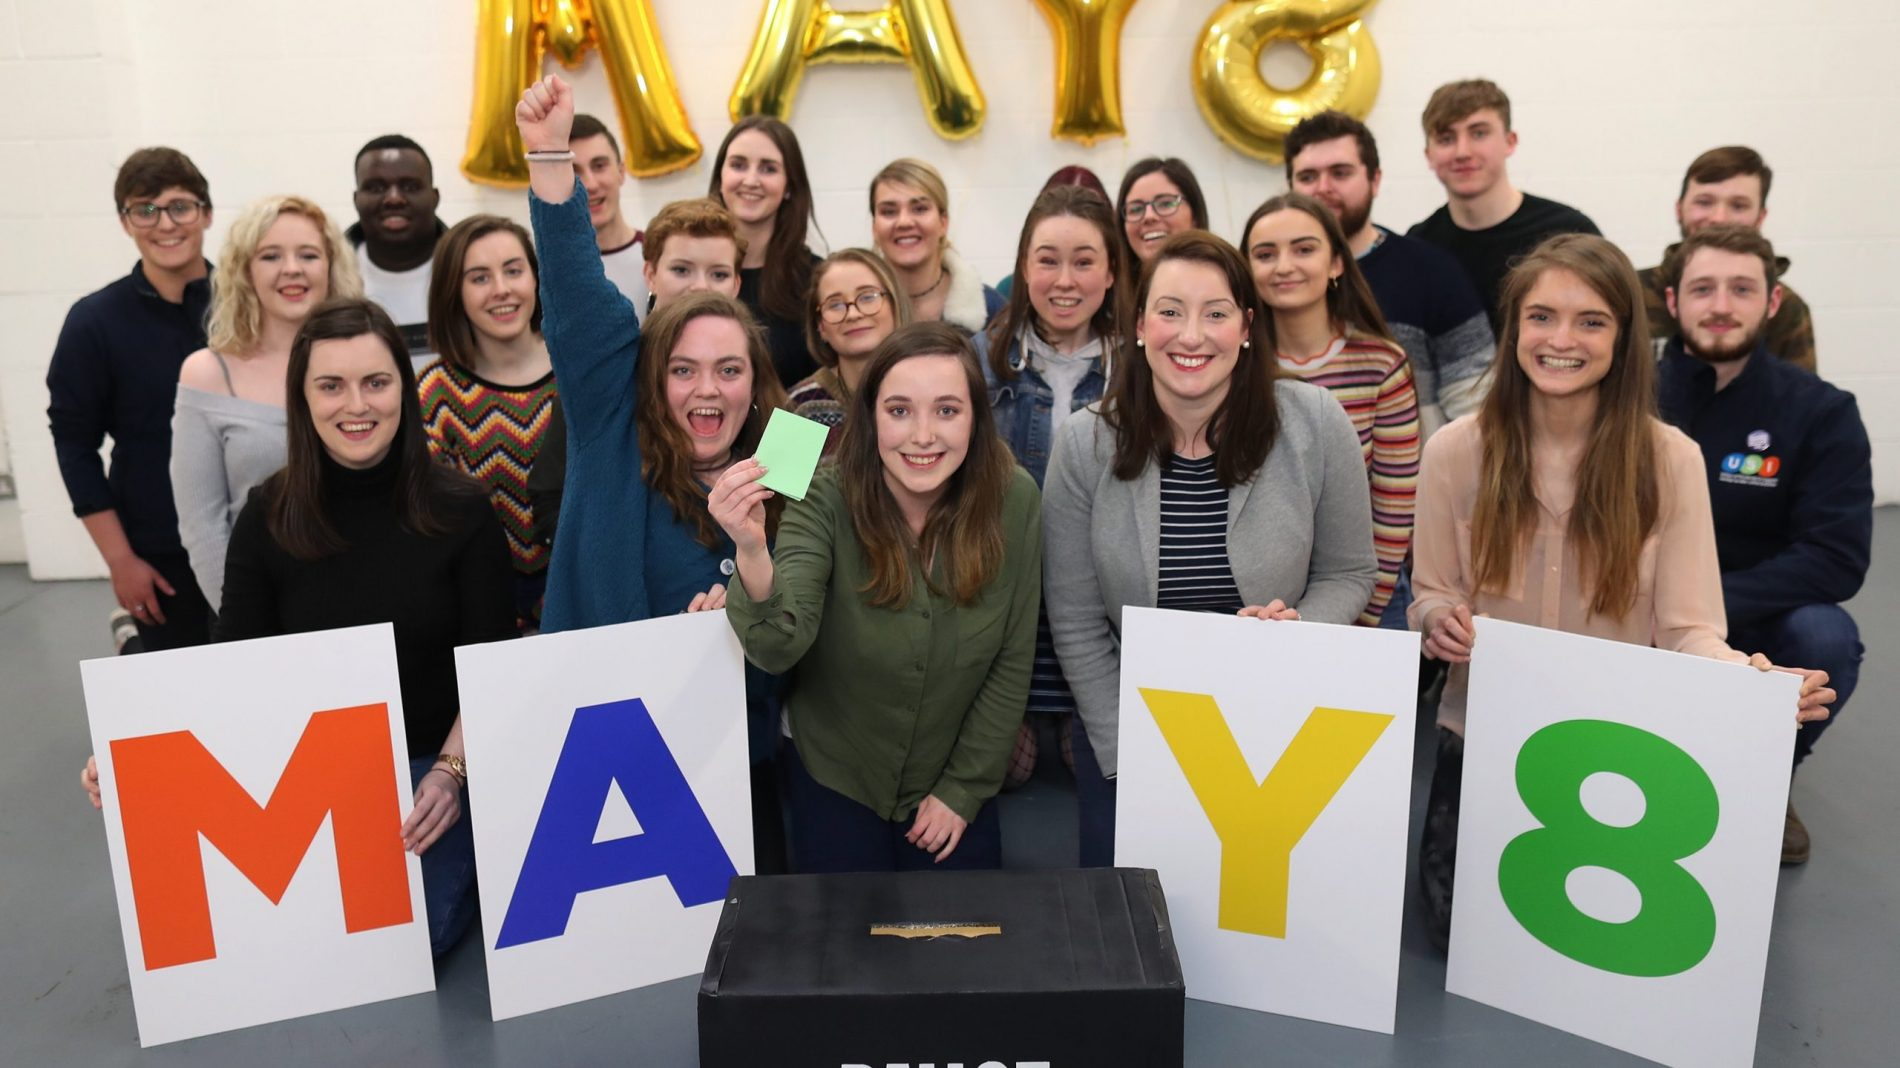 Young people with May 8 signs, in front of a ballot box